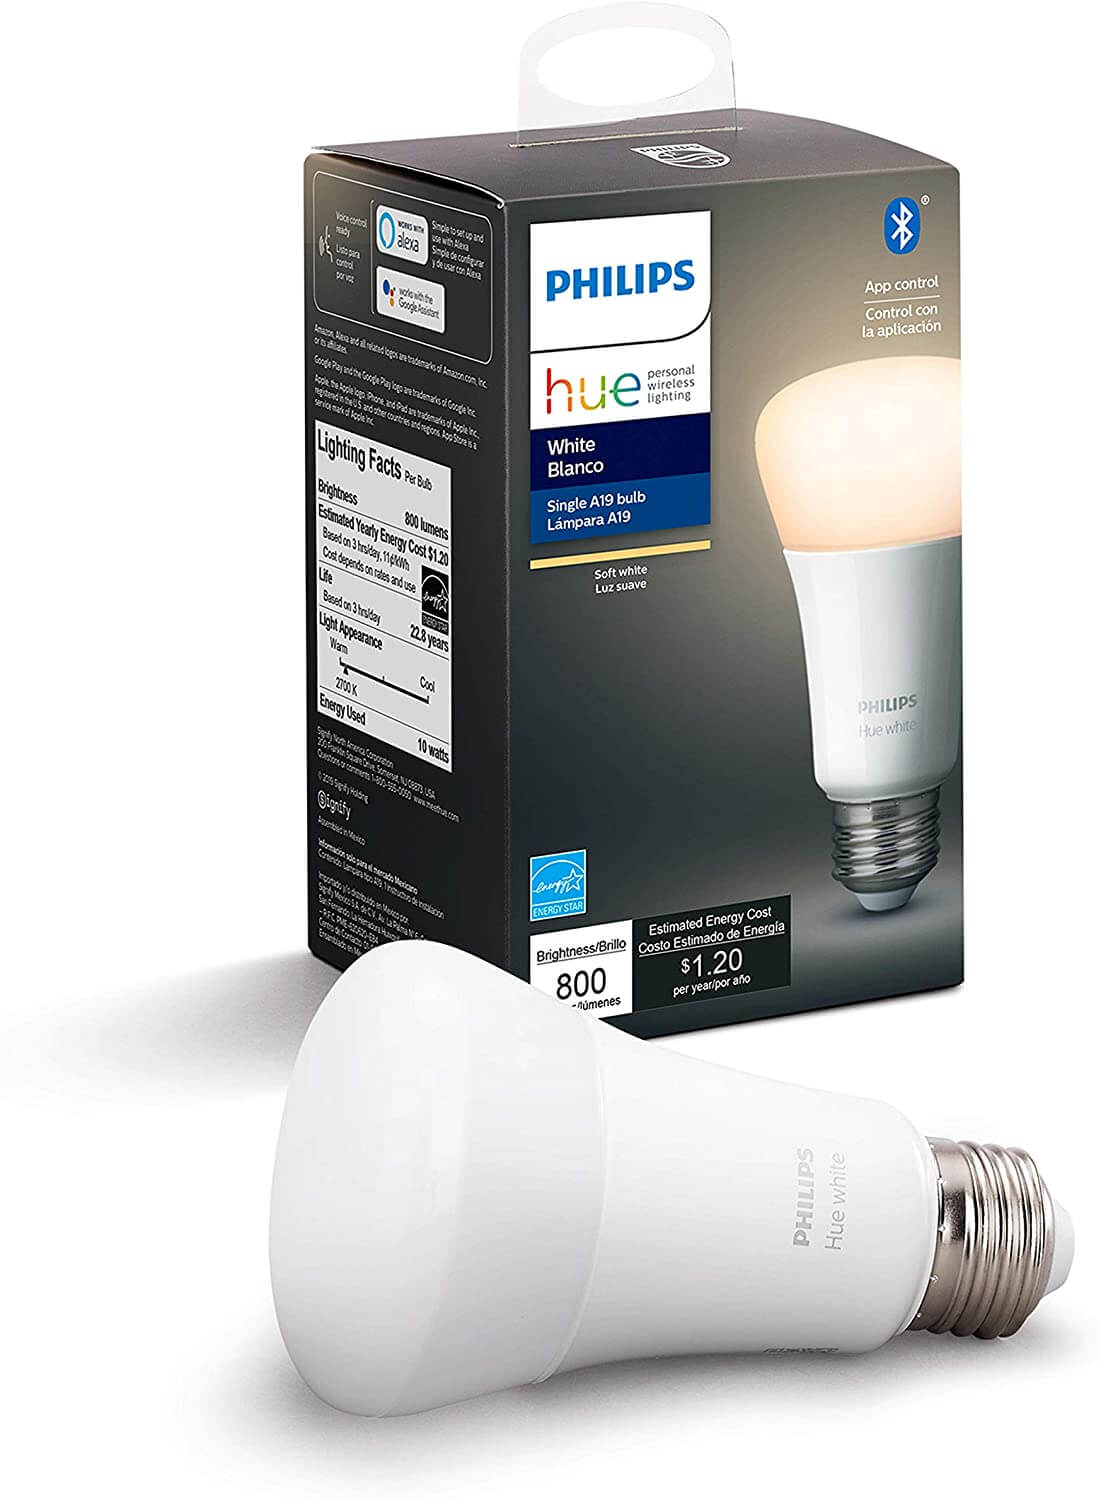 smart gadget philips hue light bulb